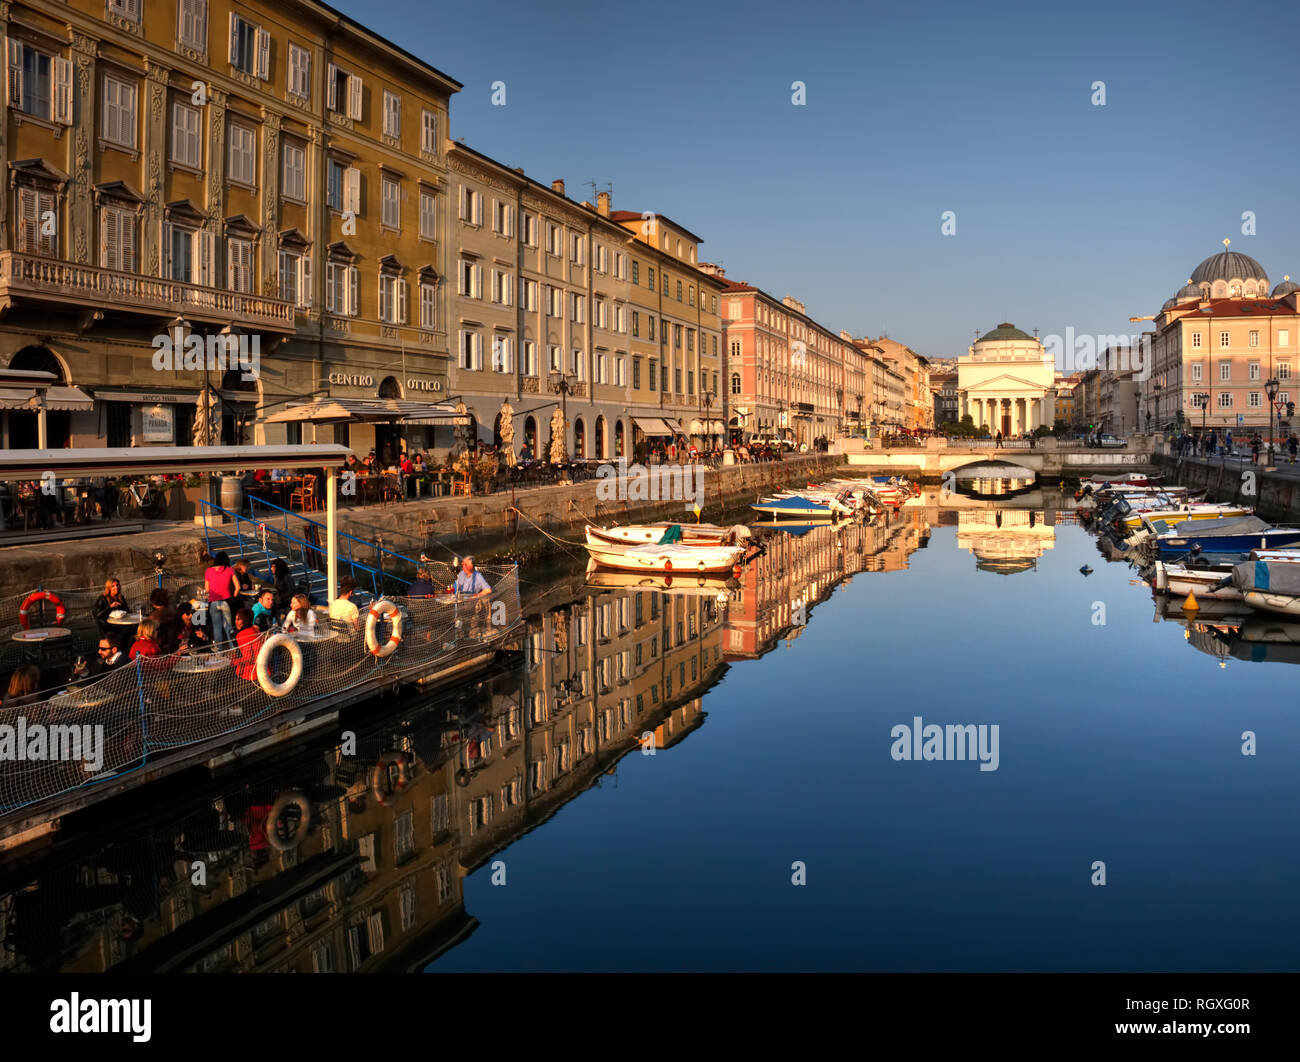 Trieste. Italy. The famous Canal and the St. Antonio church in the background. Stock Photo